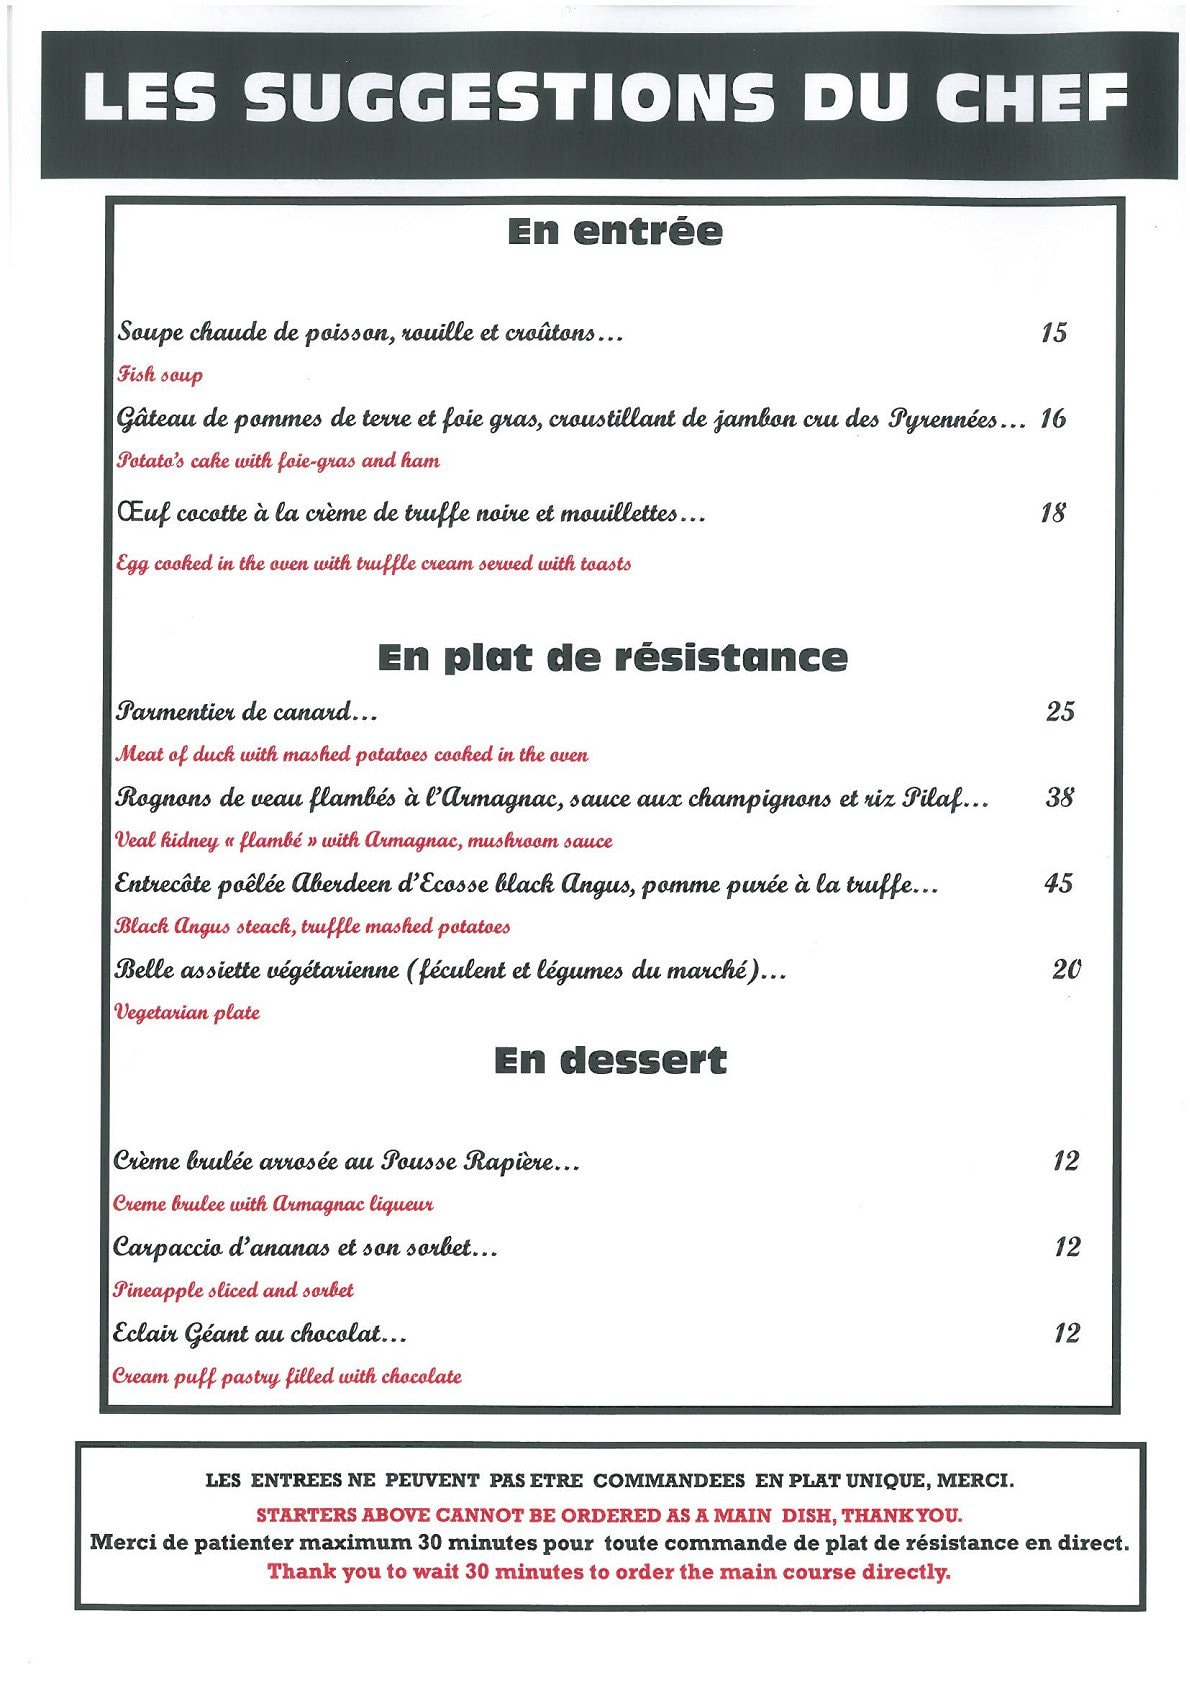 Menu auberge de maison rouge suggestions du chef suggestions du chef